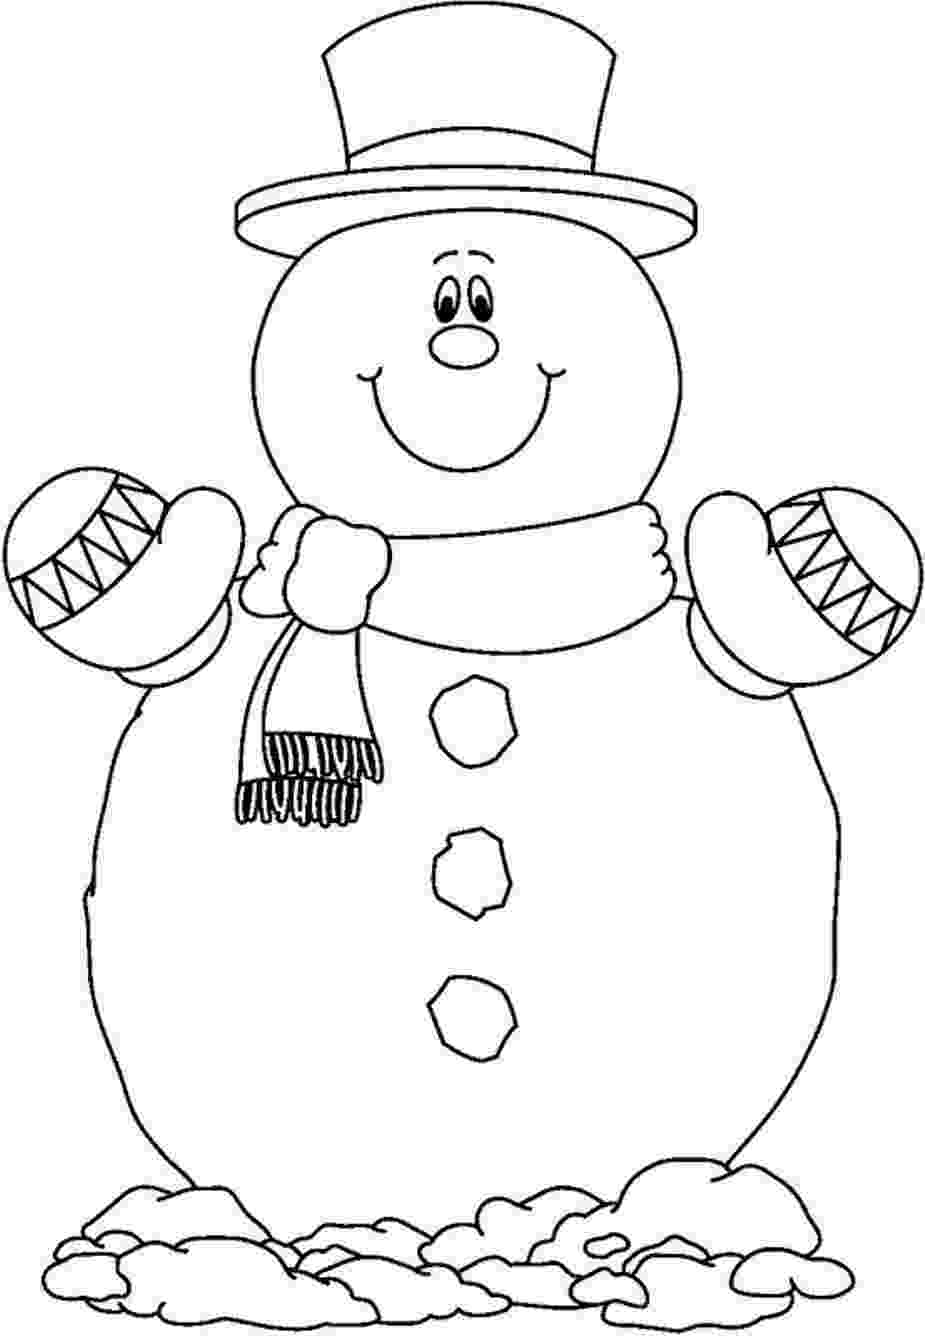 printable coloring pages snowman making a snowman coloring page crayolacom printable snowman coloring pages